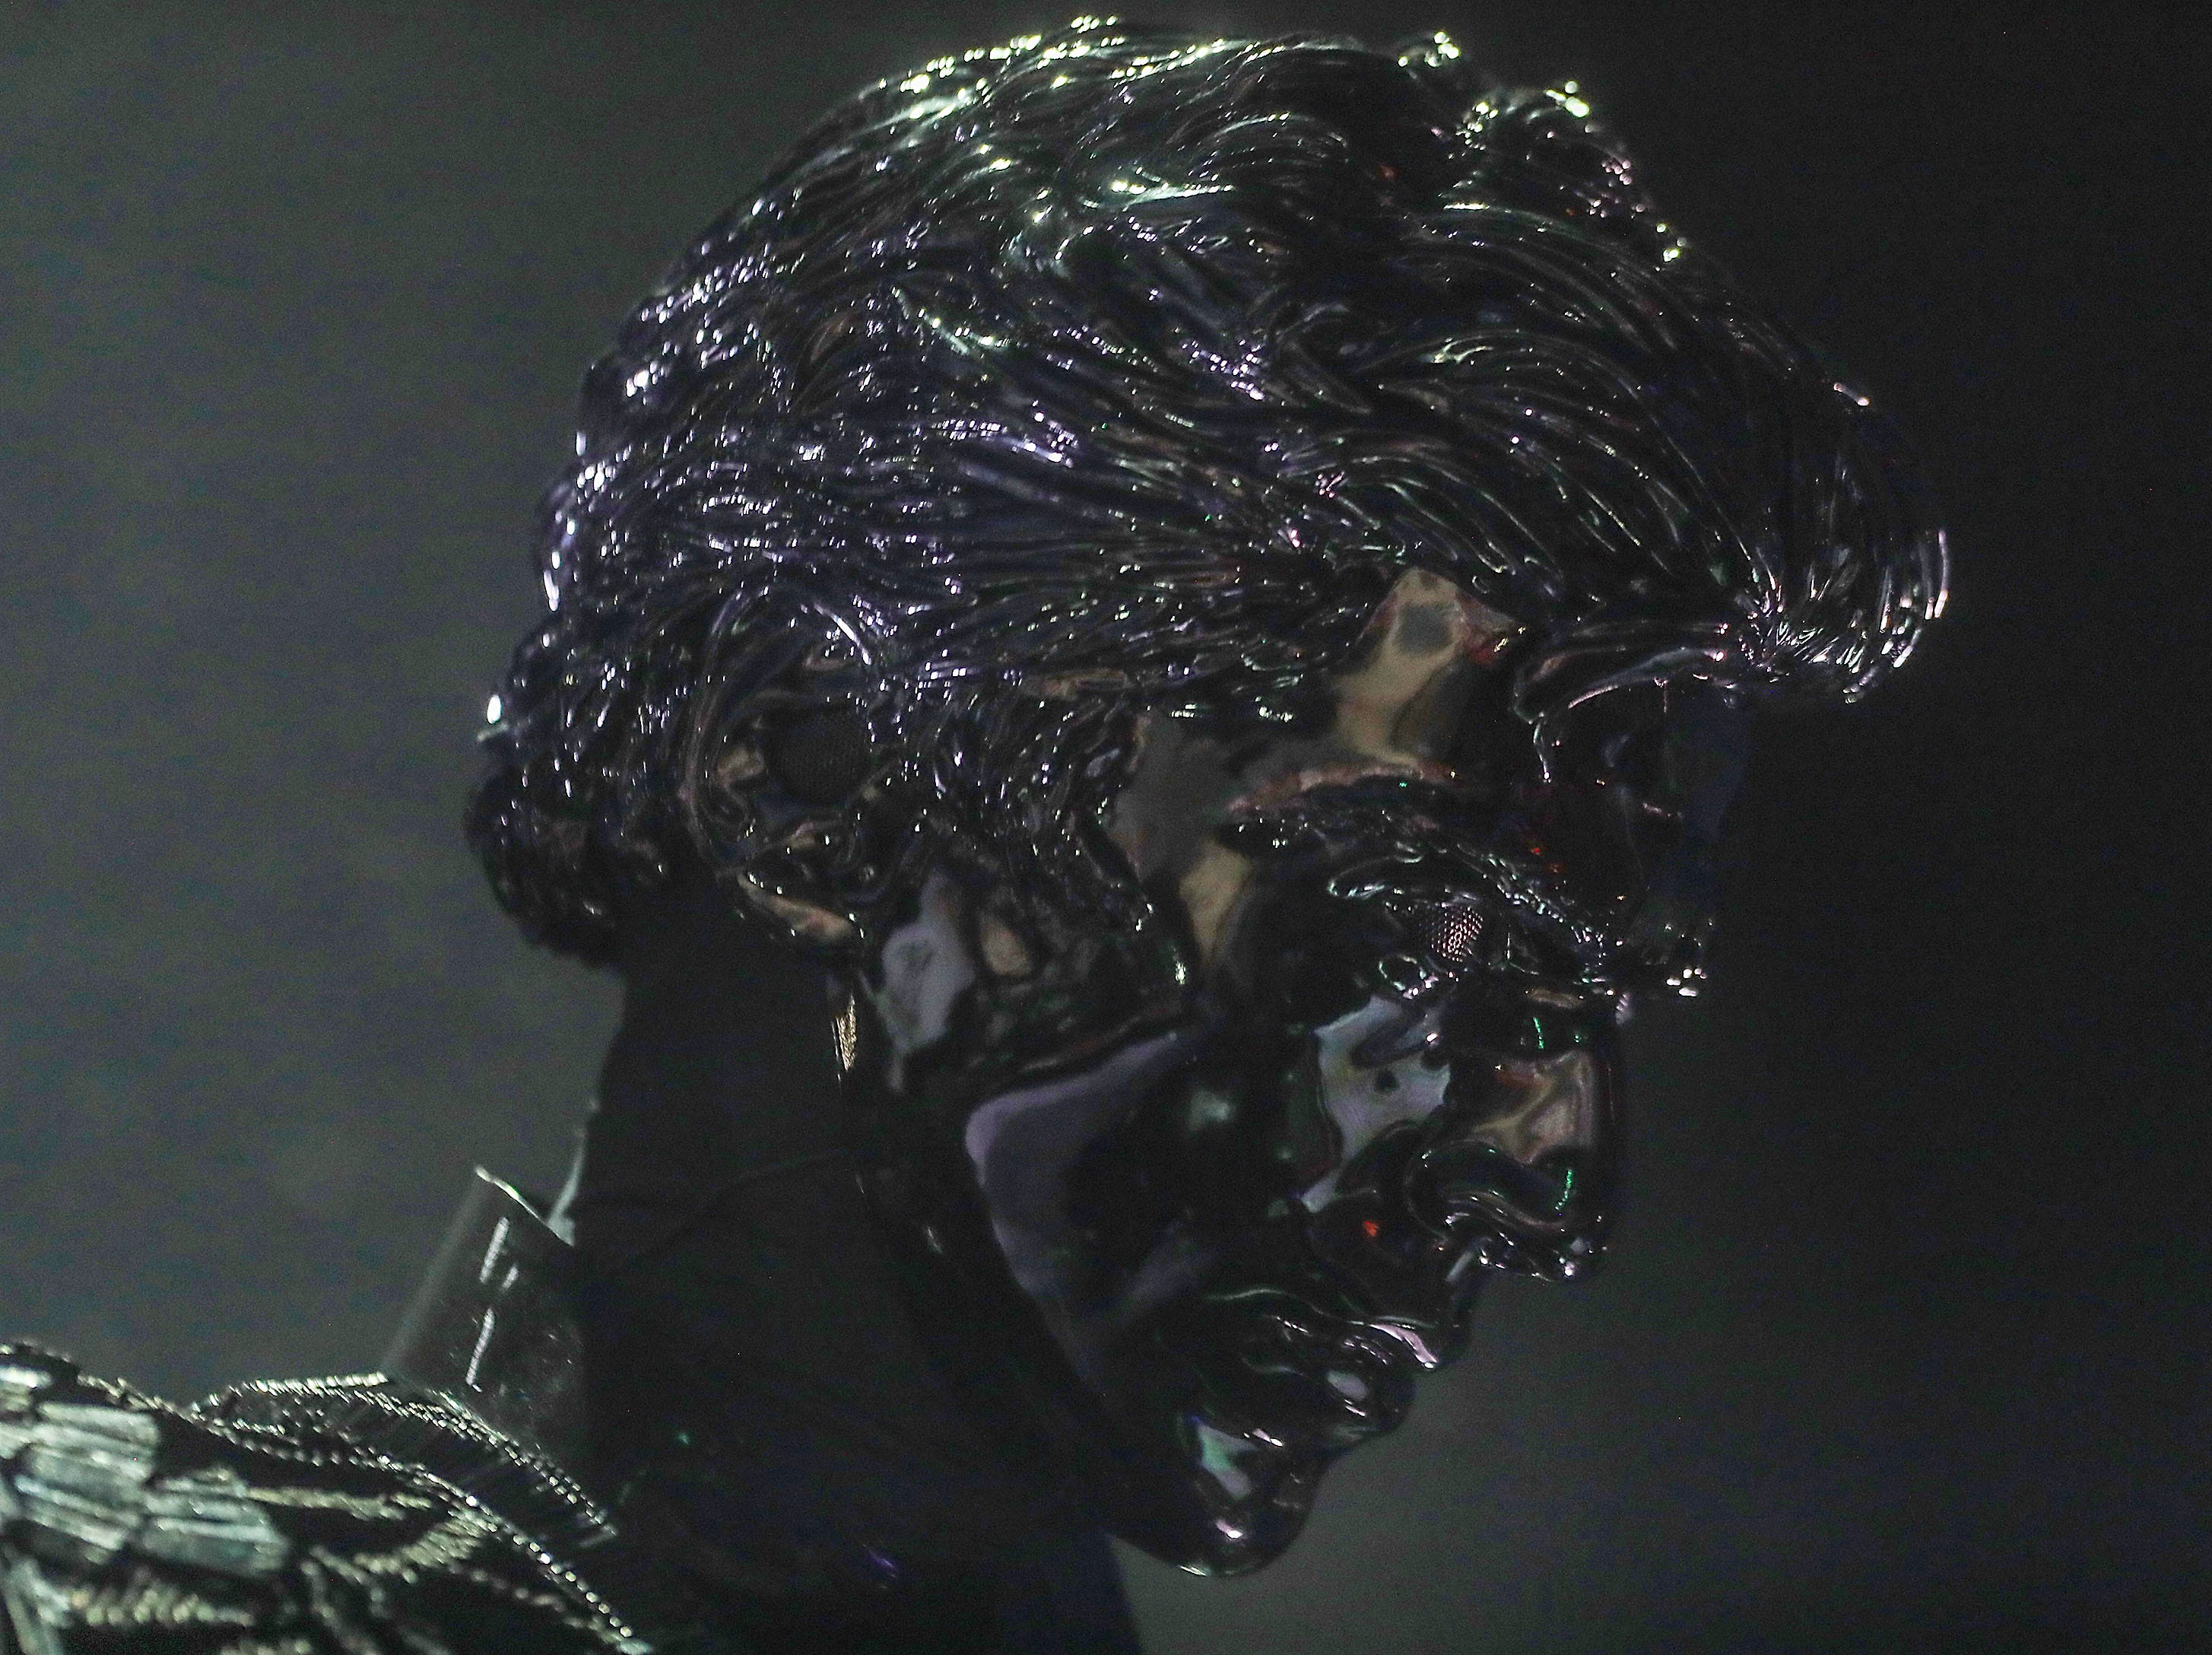 Gesaffelstein performs at the Coachella Valley Music and Arts Festival in Indio, April 21, 2019.